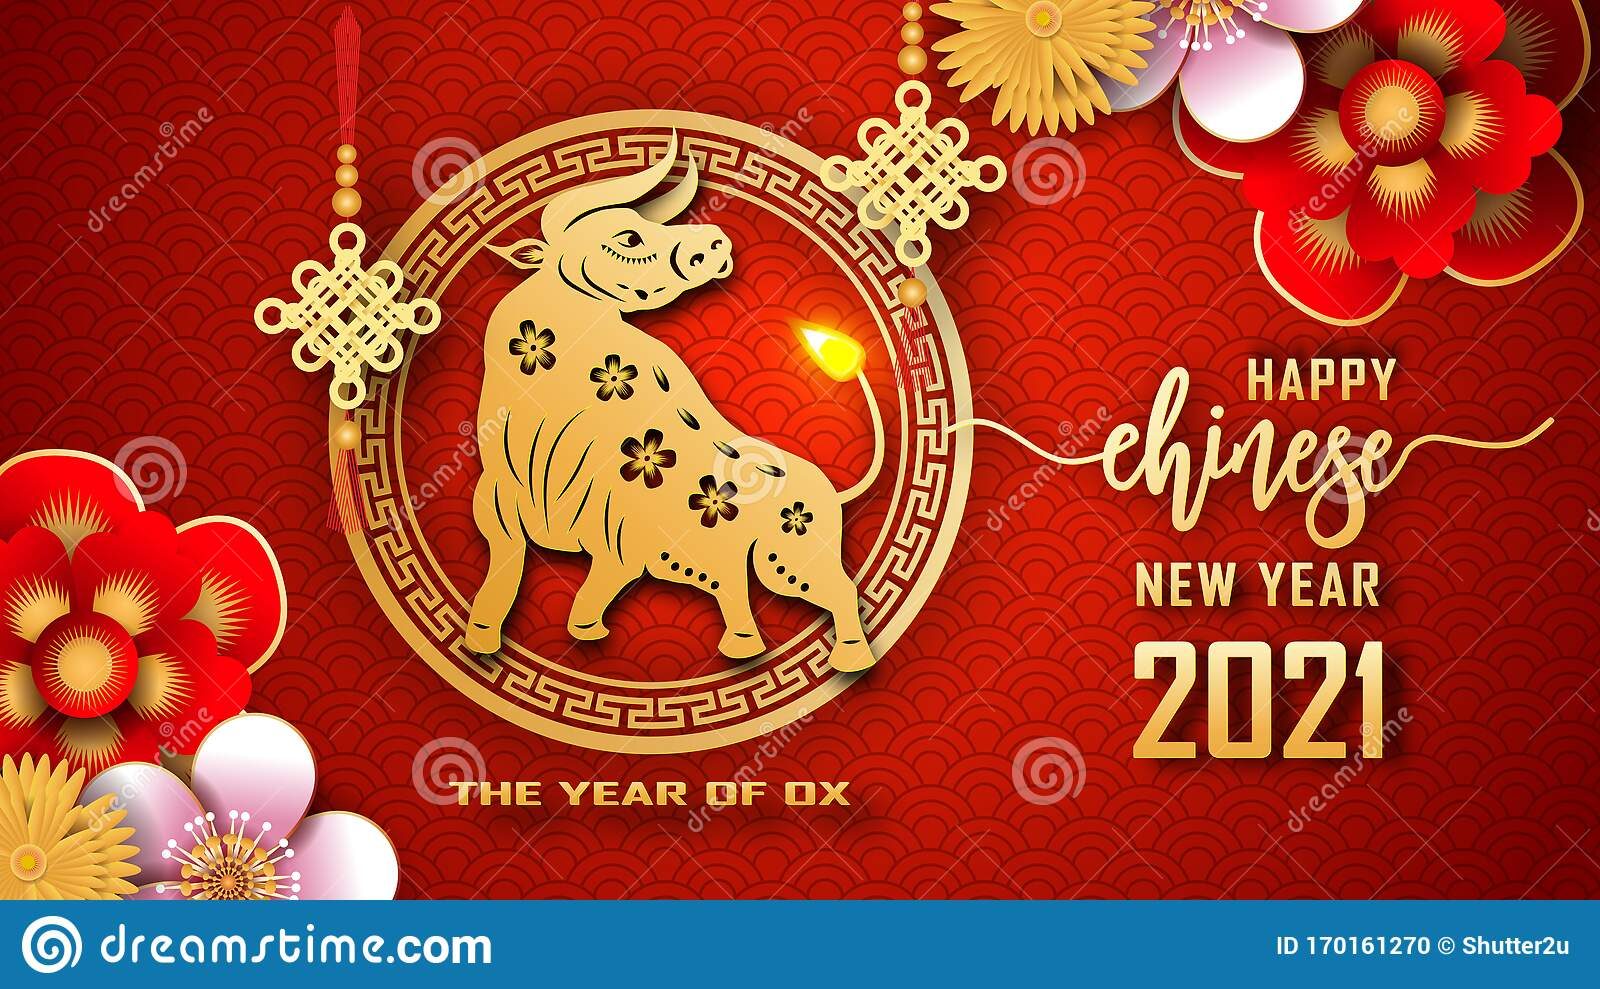 Happy Chinese New Year 2021. The Year Of The Ox. Chinese ...